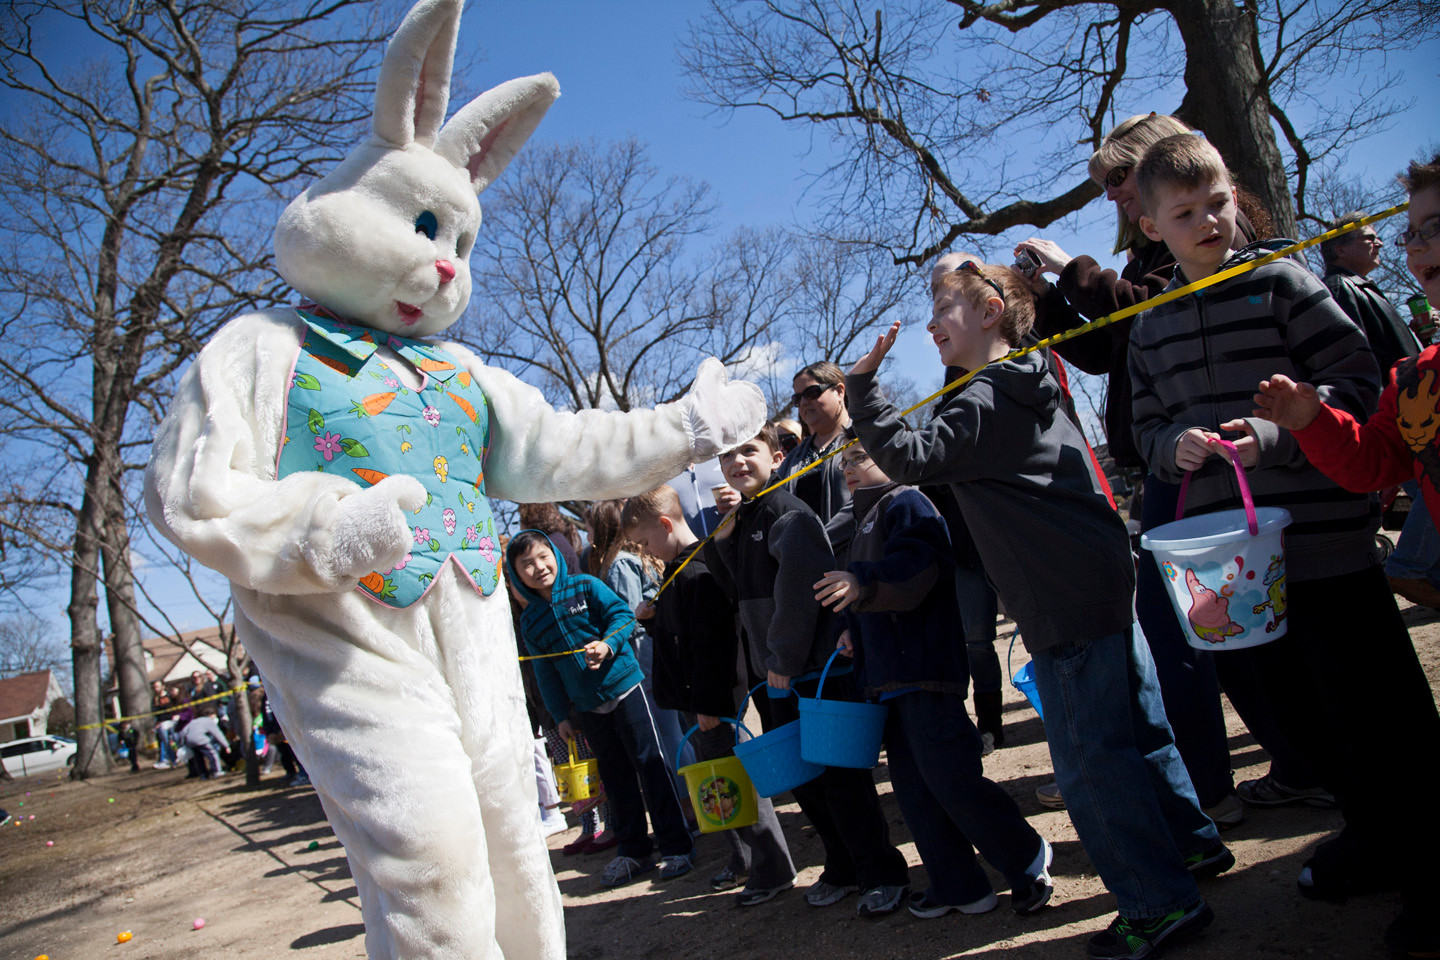 THE EASTER BUNNY made an appearance at the Easter Egg Hunt in East Rockaway.